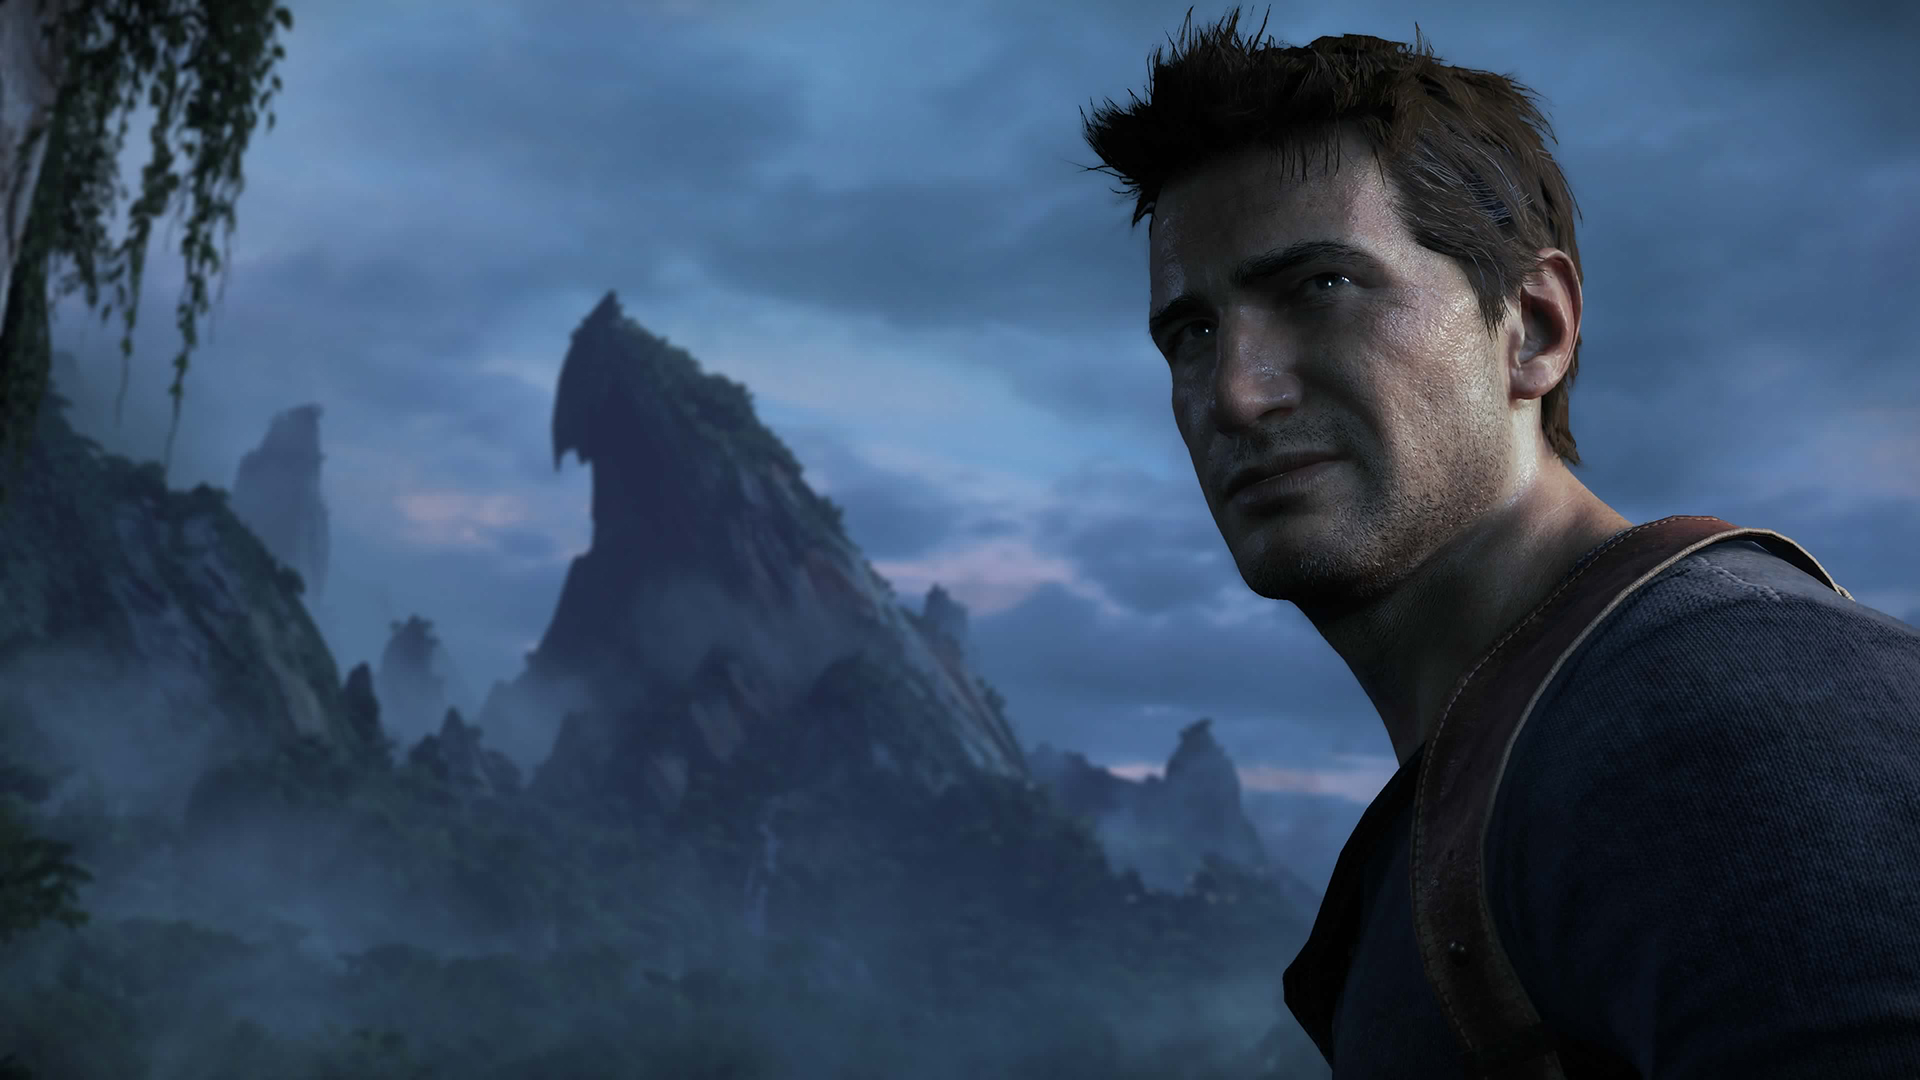 Uncharted 4 Recording New Mo Cap Despite Having Wrapped Last